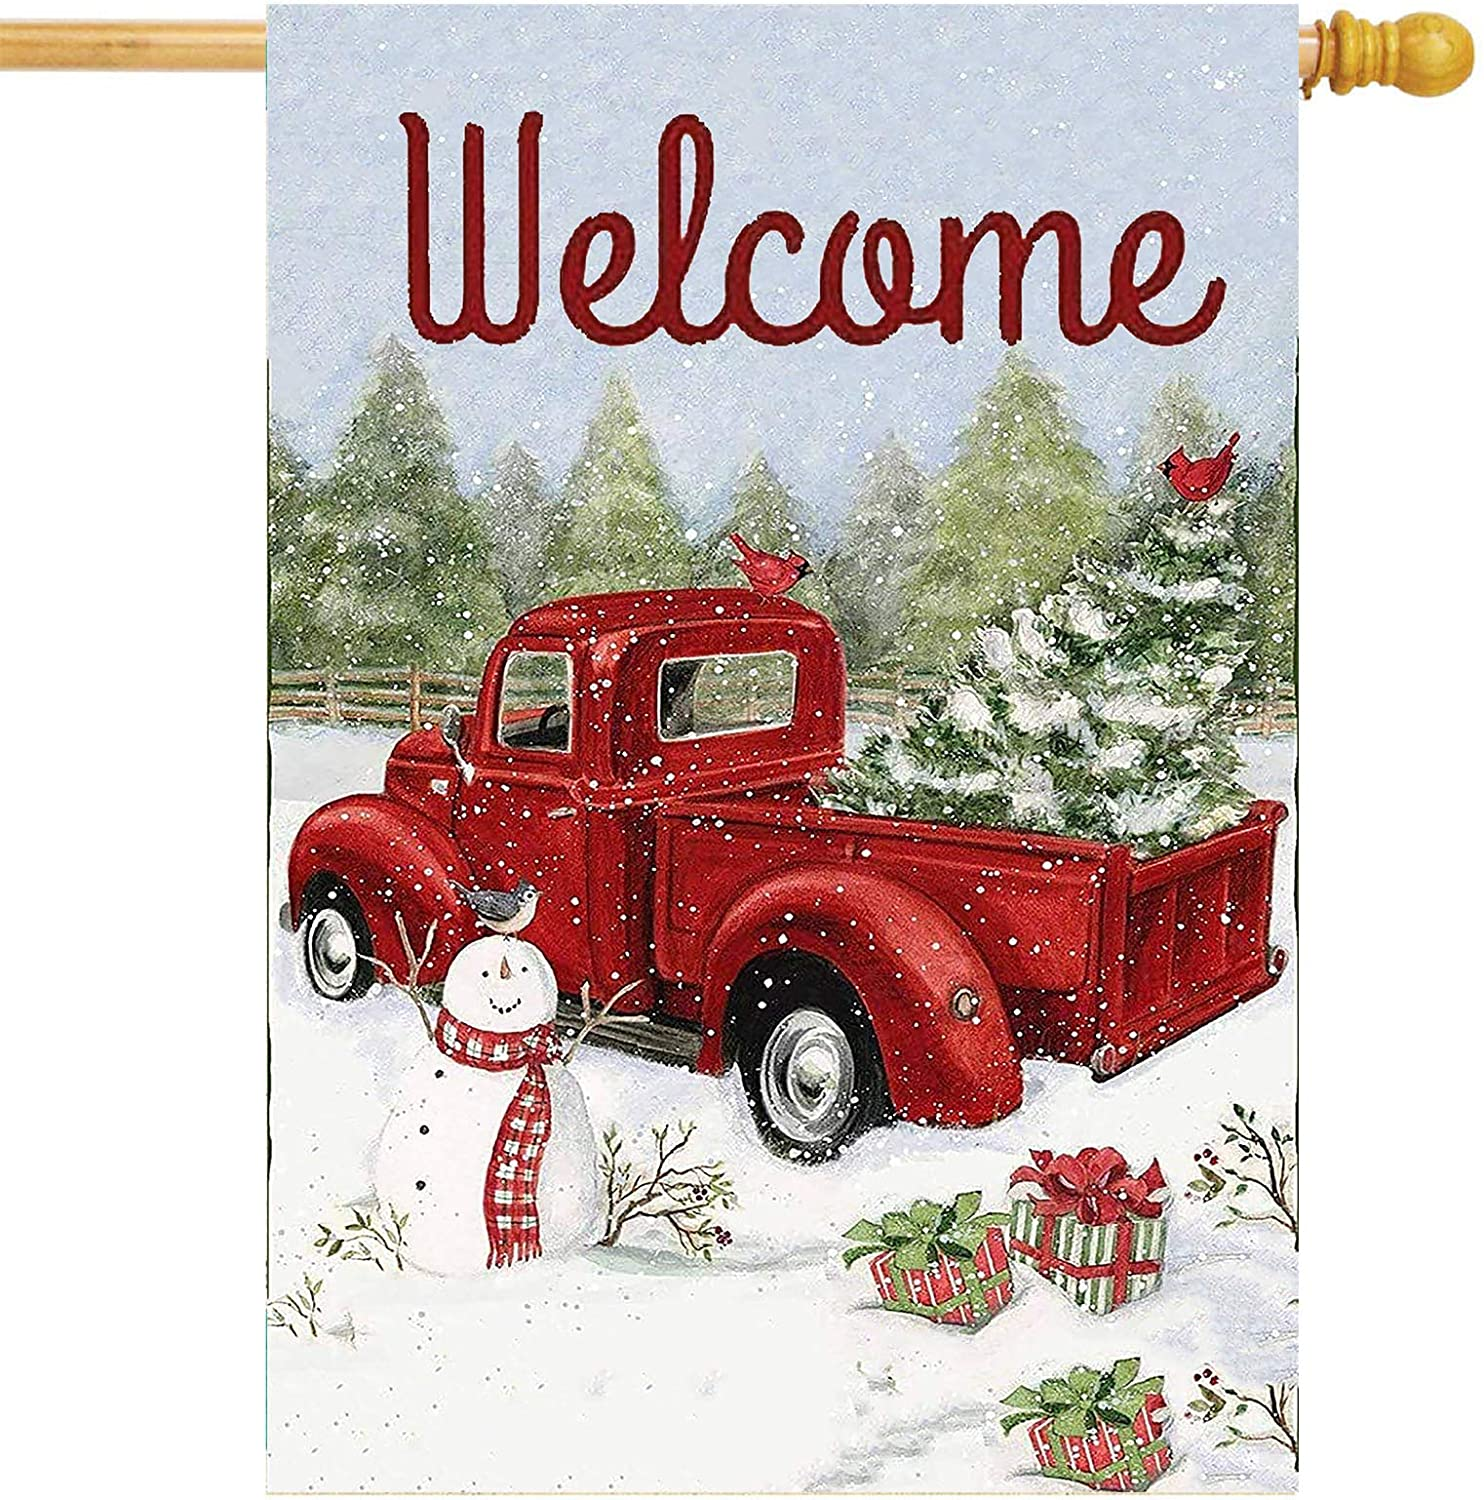 Merry Christmas Red Truck Snowman Garden Flag 28x40 Double Sided Christmas Tree Snow House Yard Flags Welcome Winter Outdoor Indoor Banner for Party Home Xmas Decorations